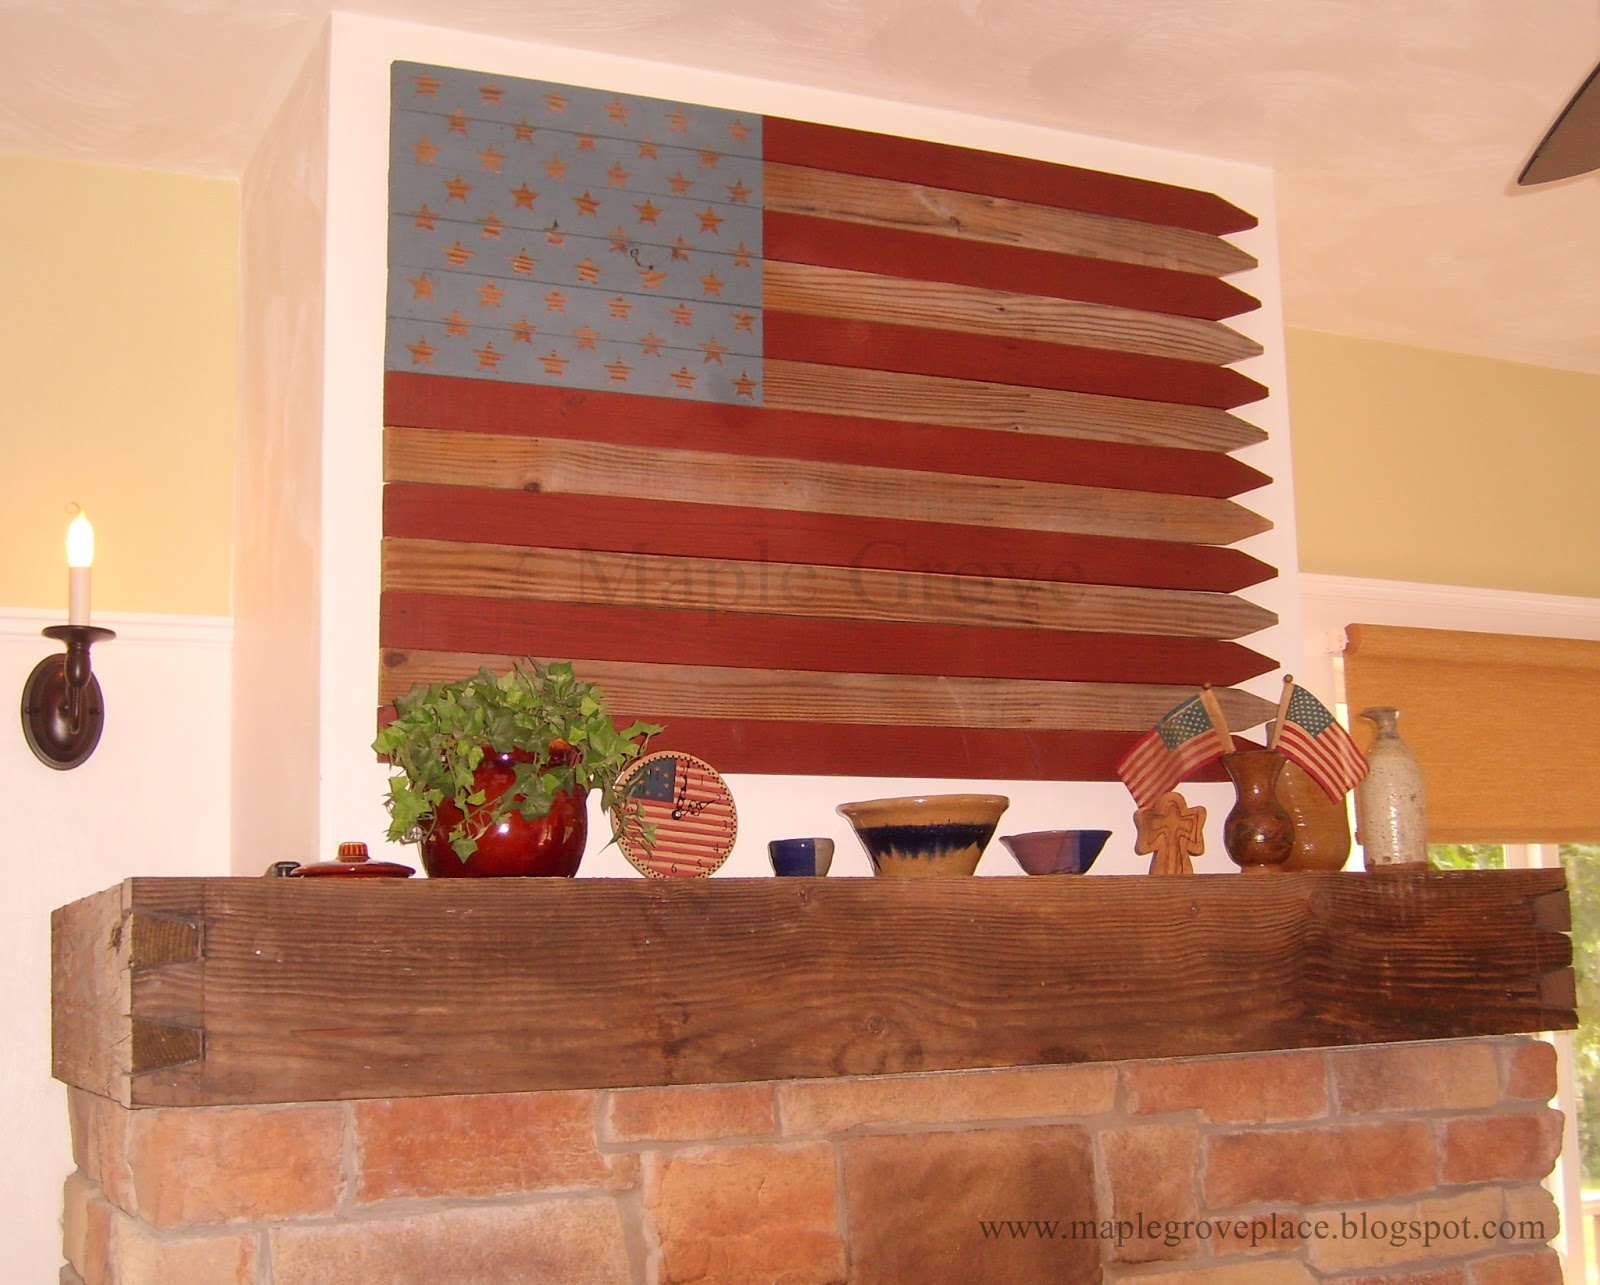 Maple Grove How To Make A Picket Fence American Wall Flag